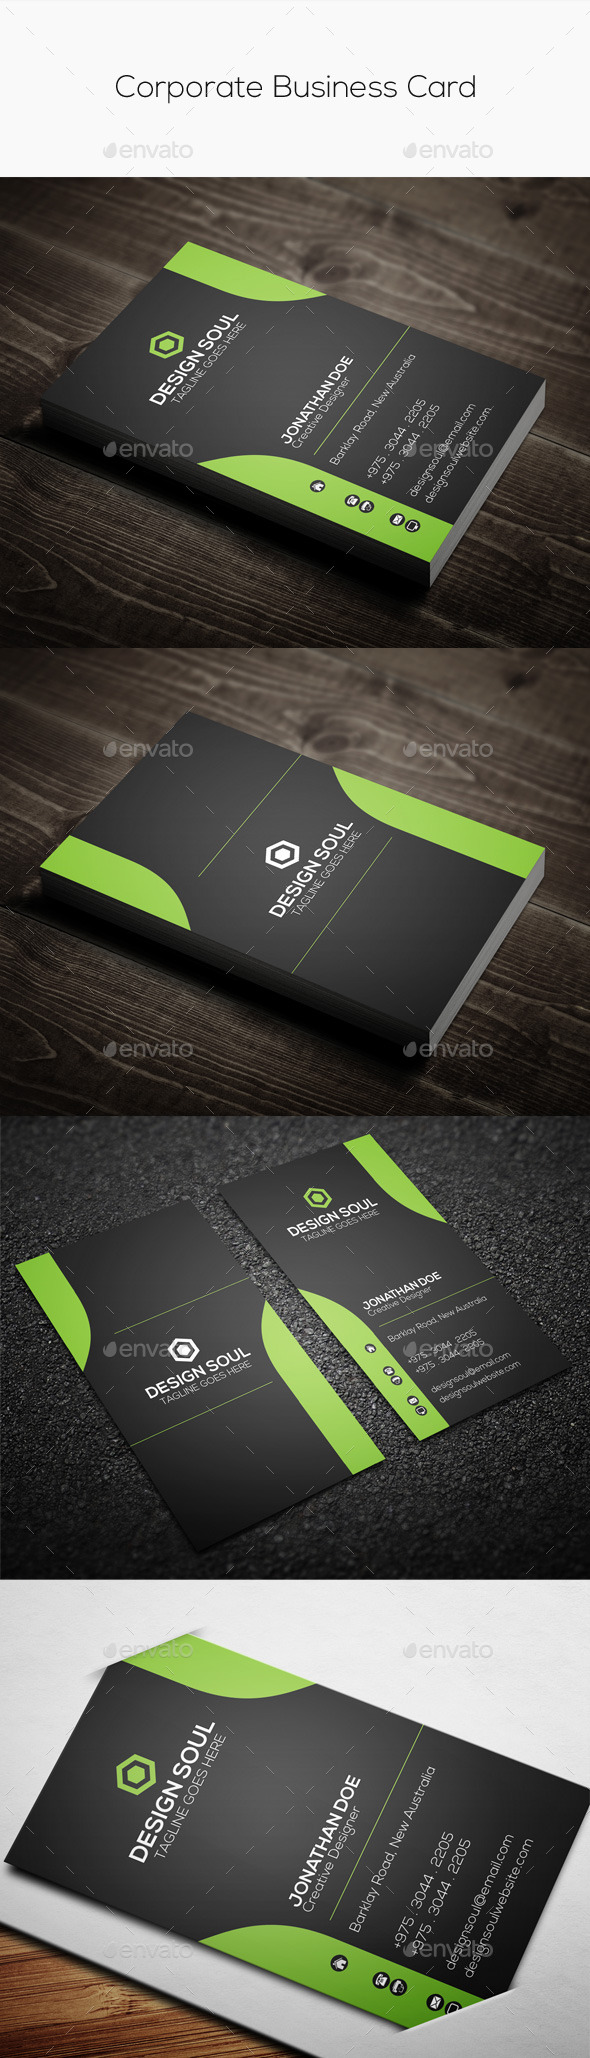 GraphicRiver Creative Corporate Business Card 9104728